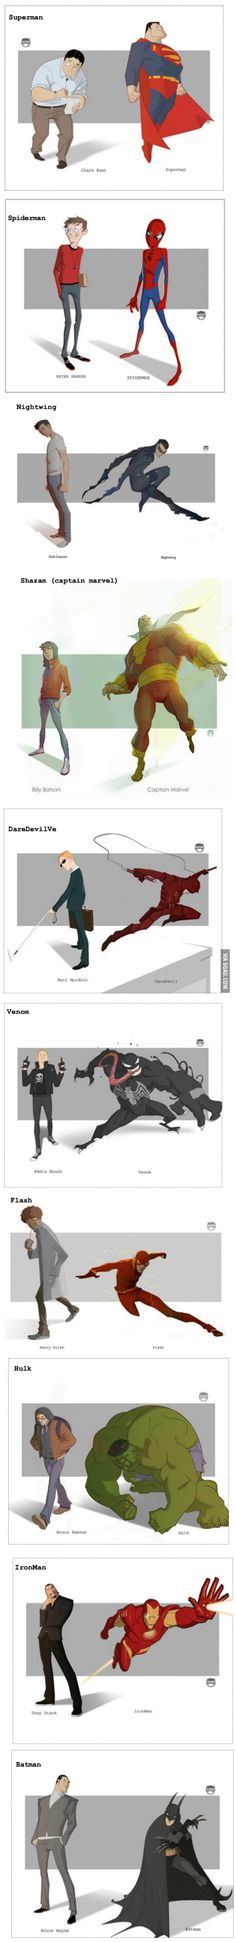 10 Stylish Secret Identities And The Heroes They Become